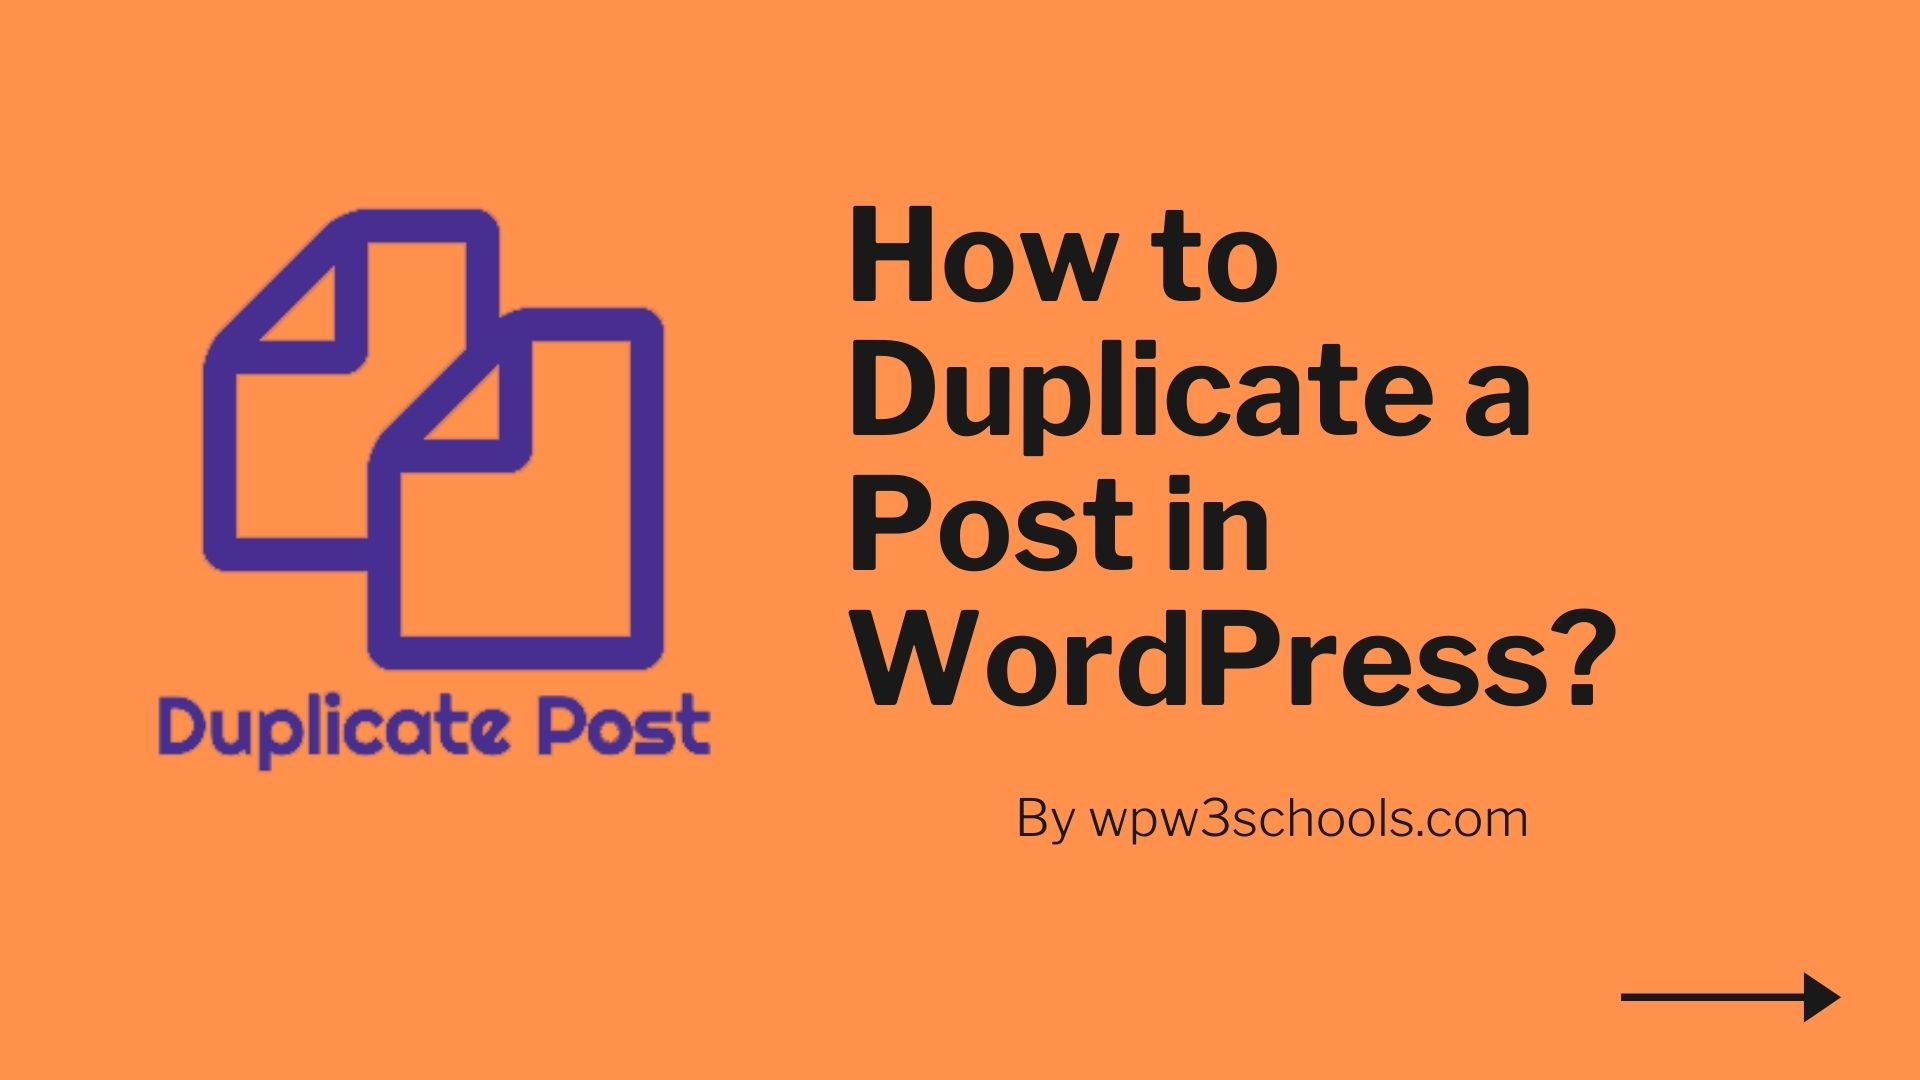 How to Duplicate a Post in WordPress WPw3schools Plugins and Themes